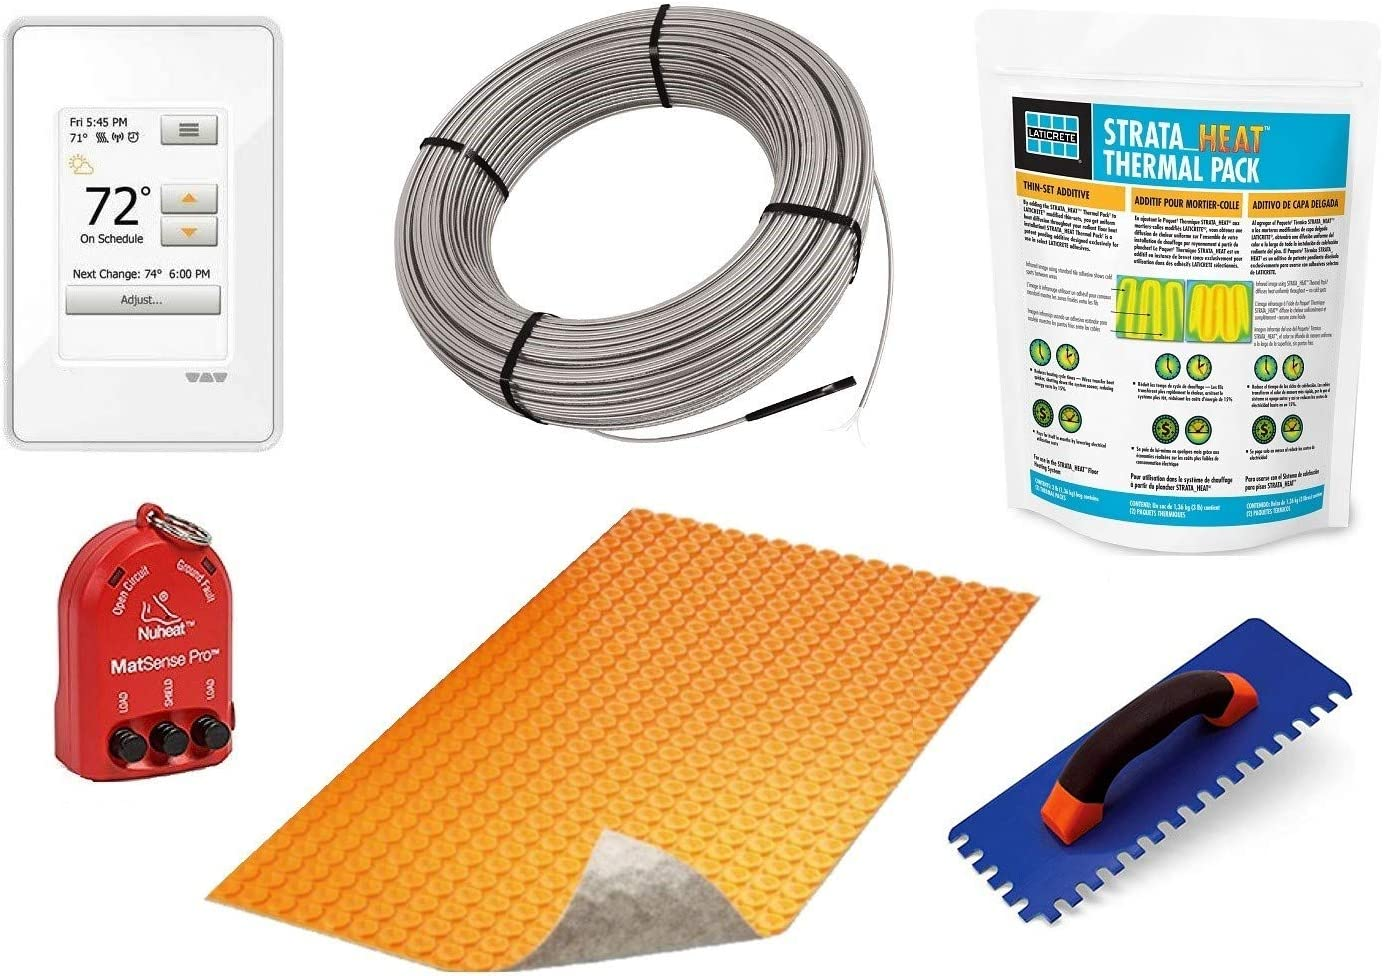 Schluter Ditra DUO Signature Floor Heating Kit -64 Square Feet- Includes Touchscreen Programmable Thermostat, DUO Membrane, Heat Cable DHEHK12064, Safe Installation Tools, Heat Enhancing Additive